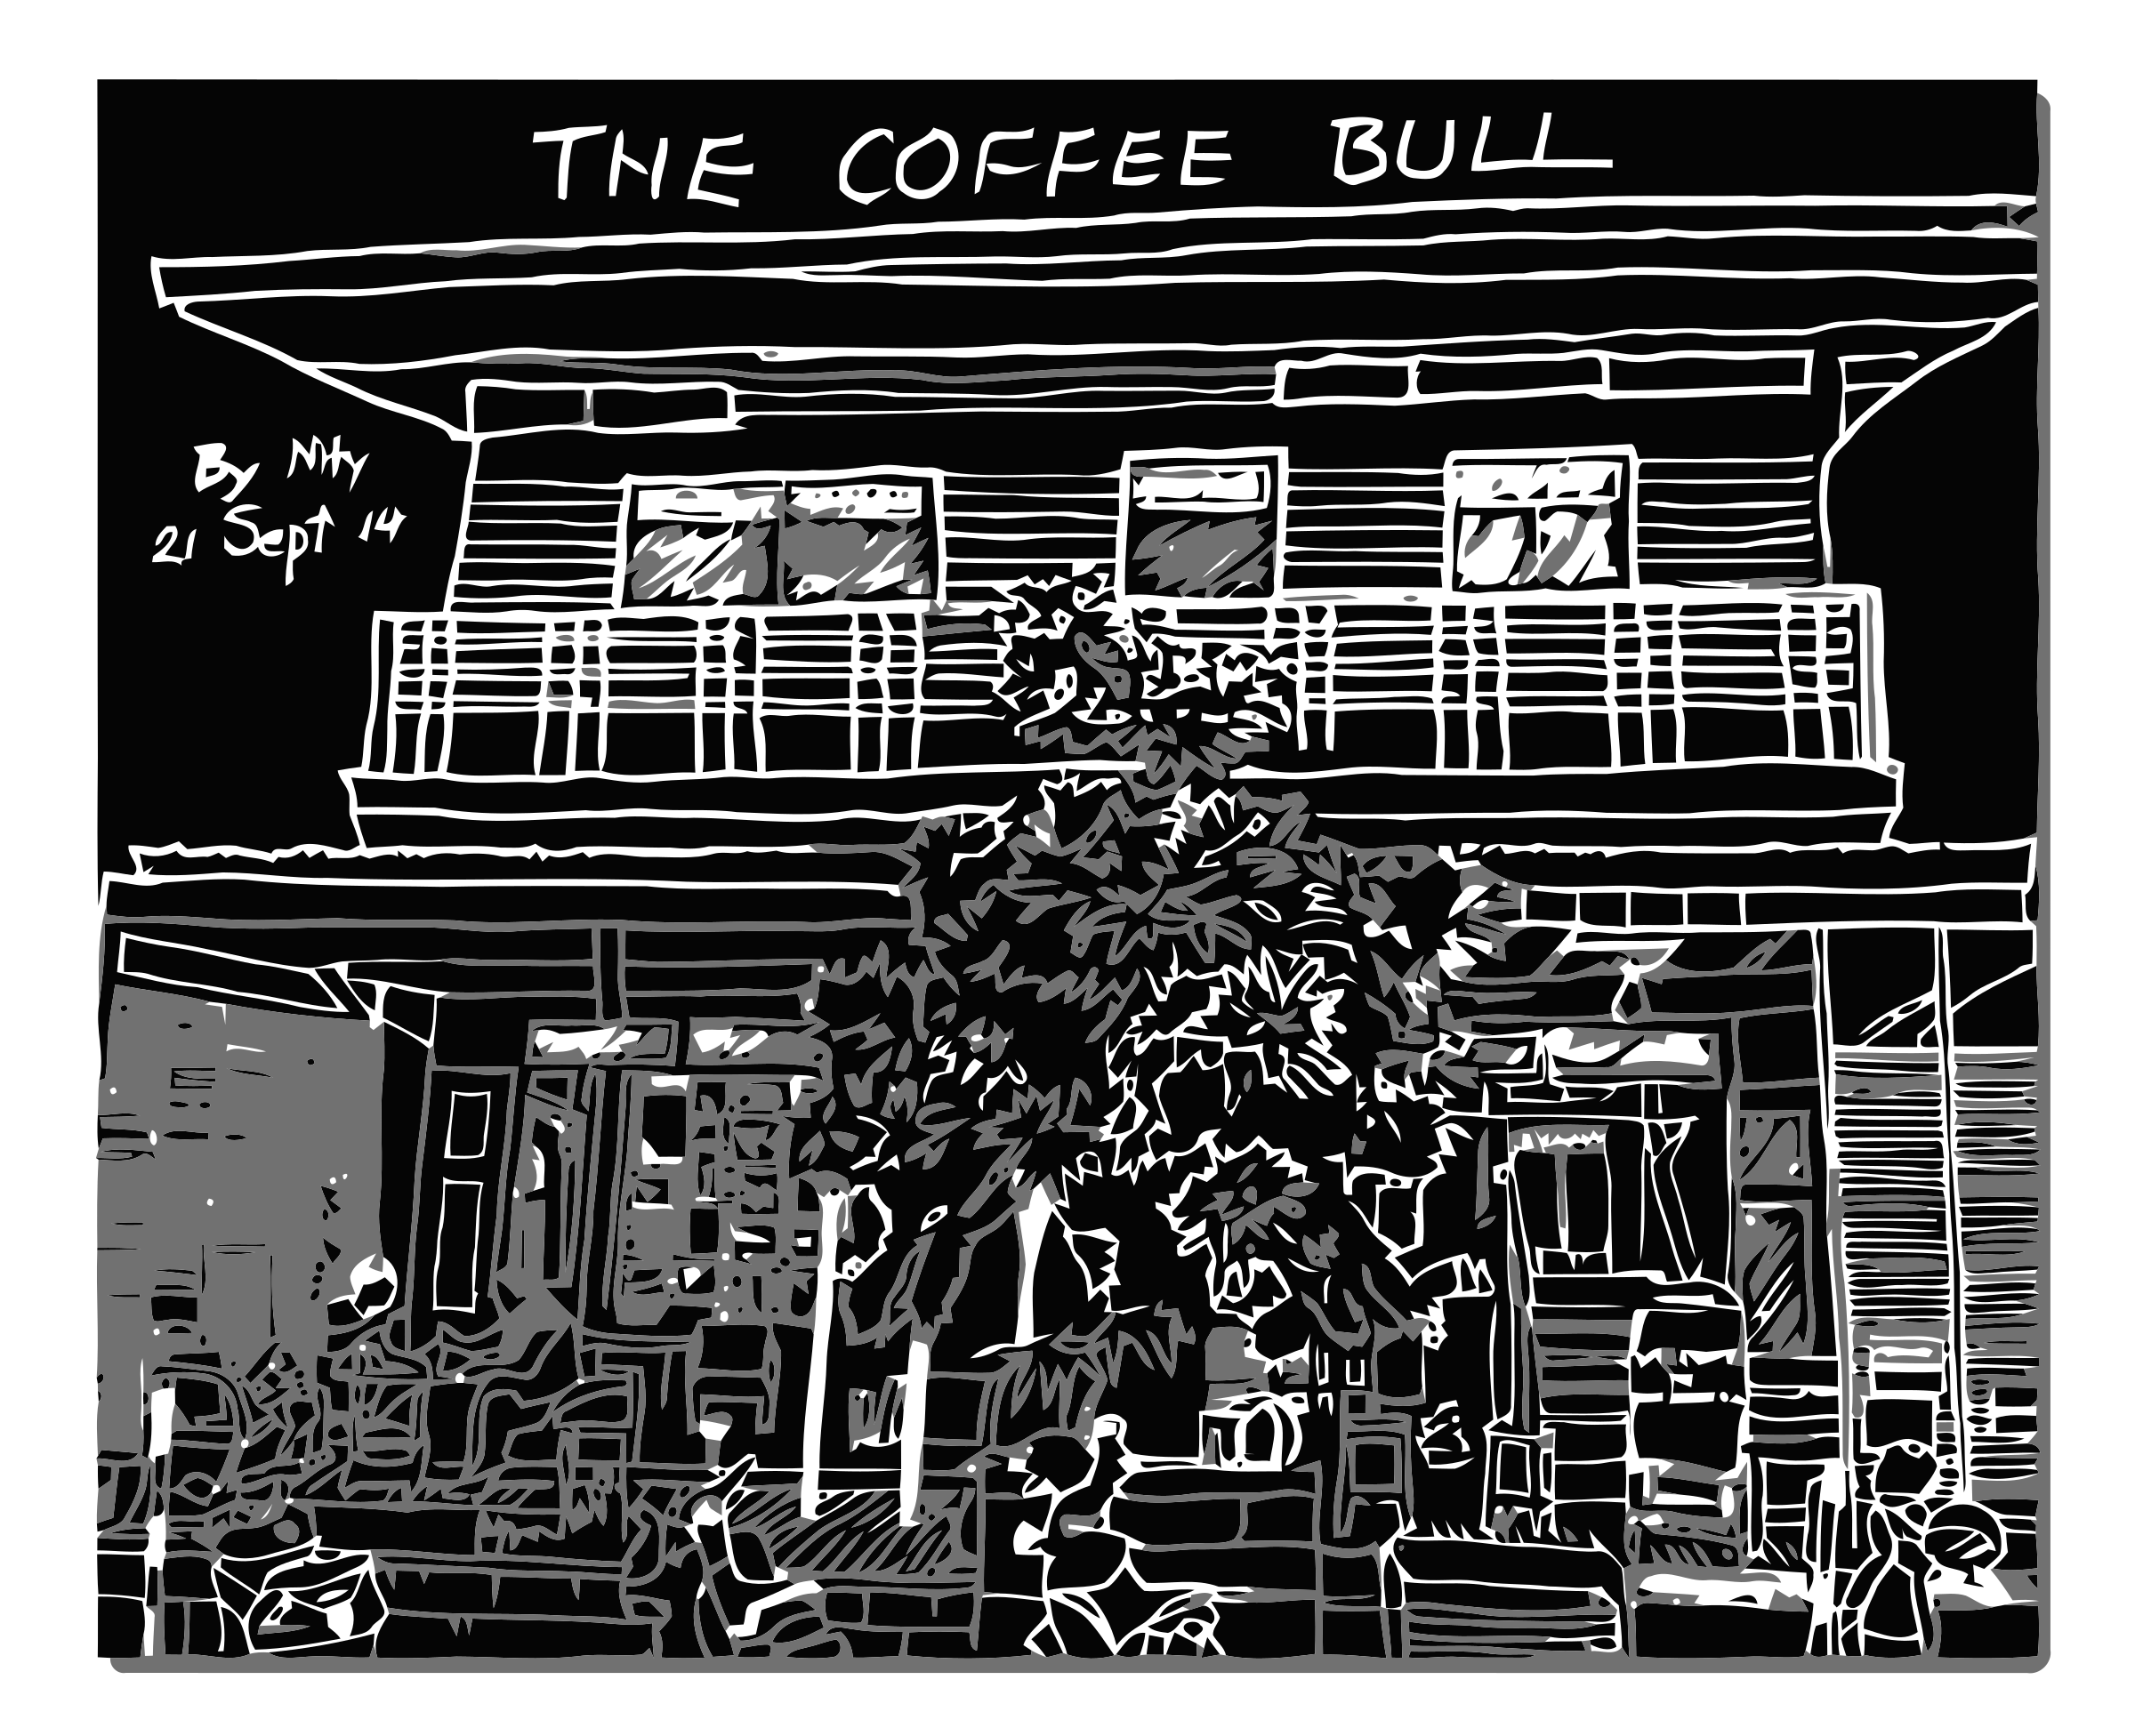 The Coffee Bull by aungkarns